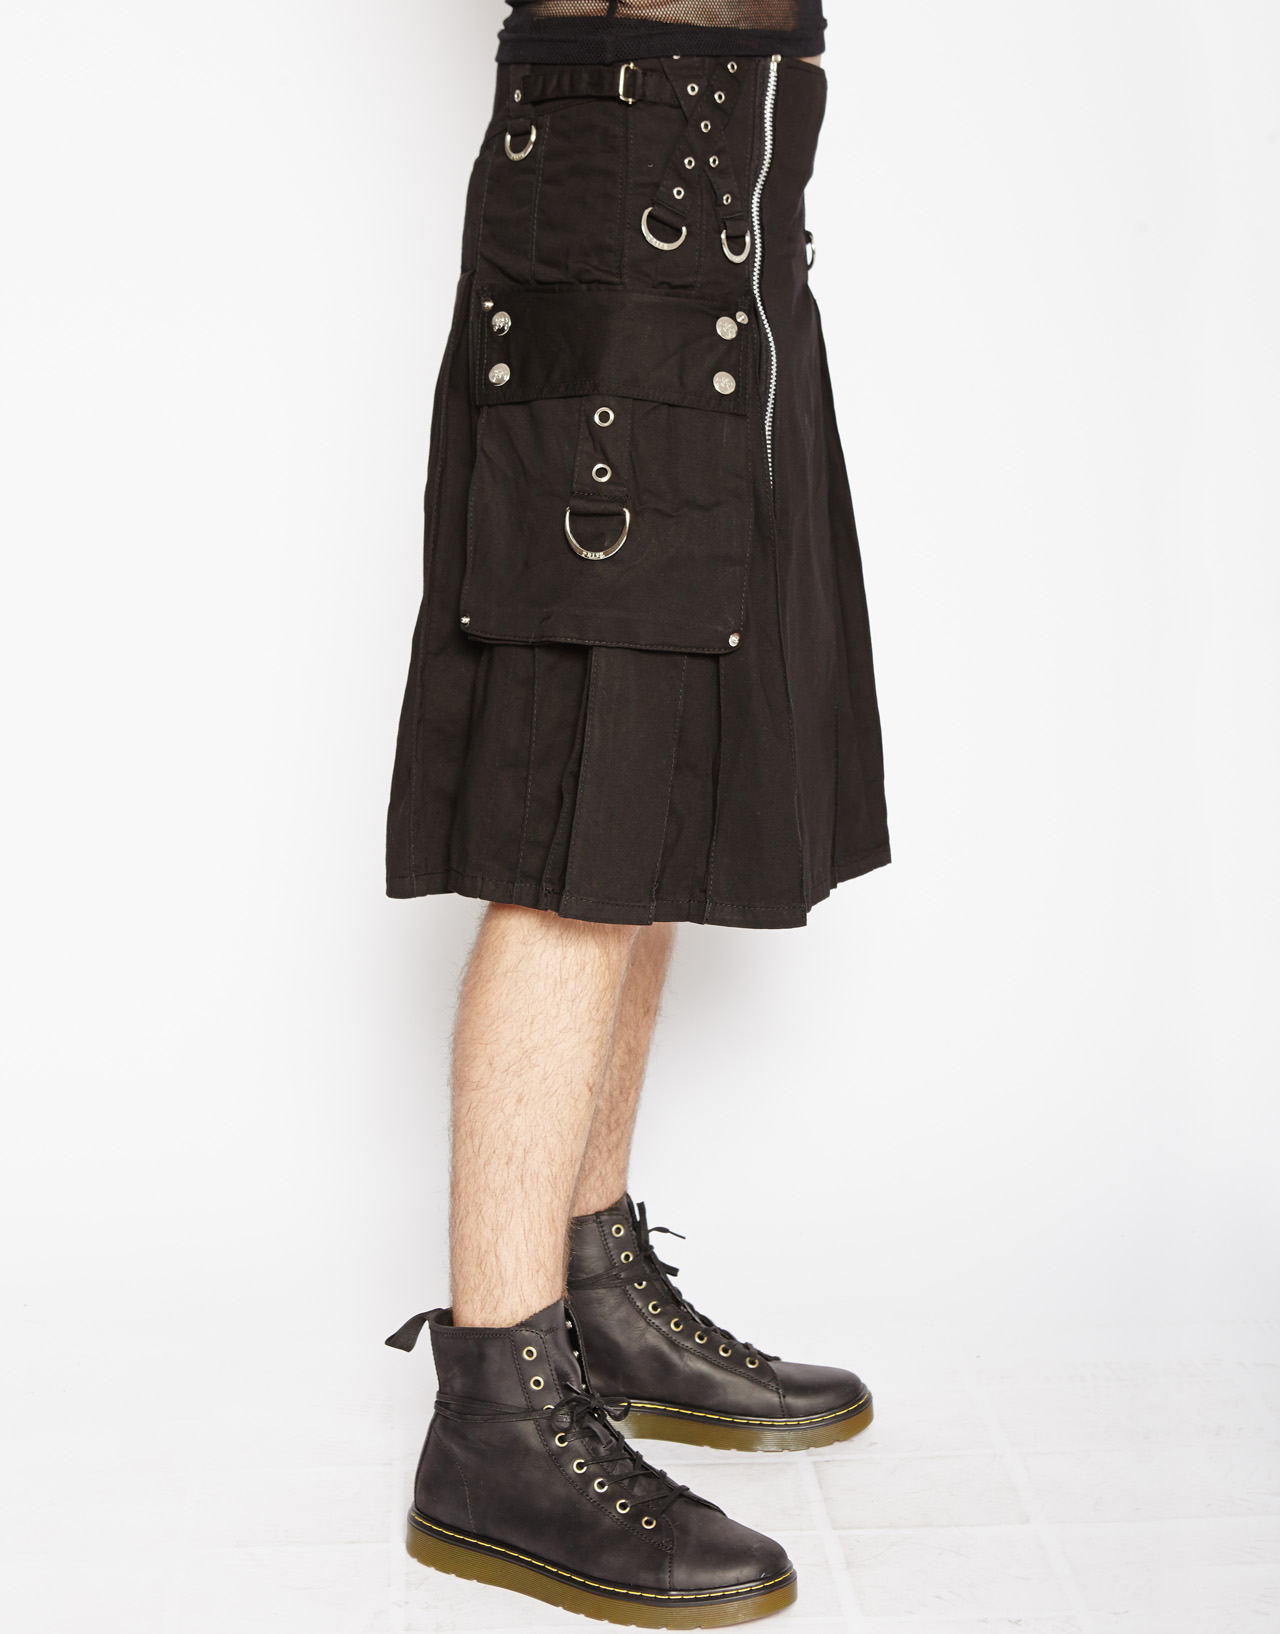 SUPER KILT, $84.00 at  trippnyc.com